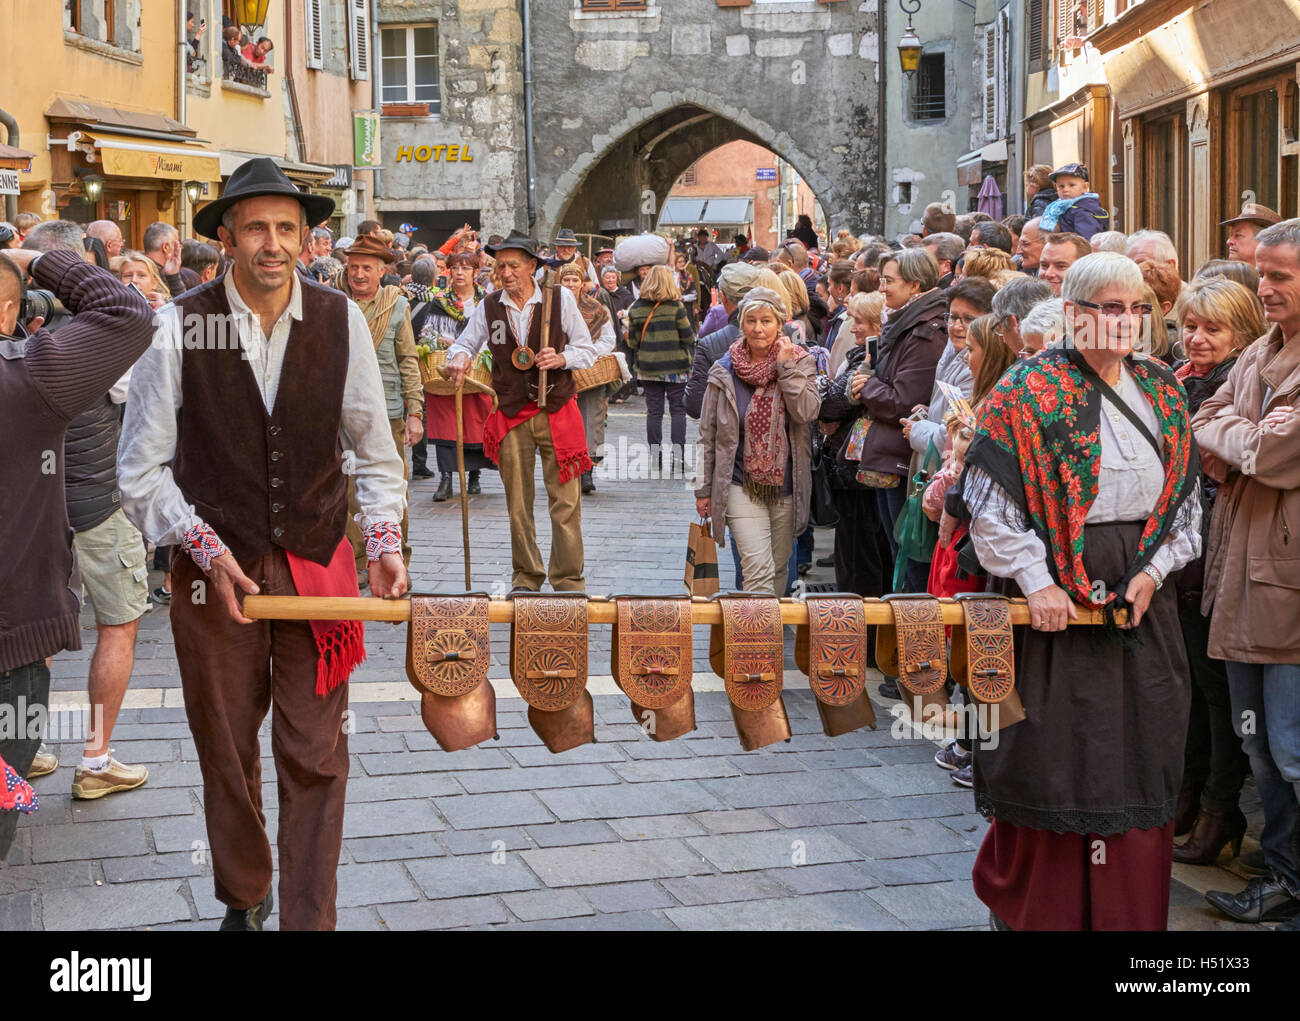 Ringing sheep bells during the Retour des Alpages festival. Annecy, Haute-Savoie, France. - Stock Image